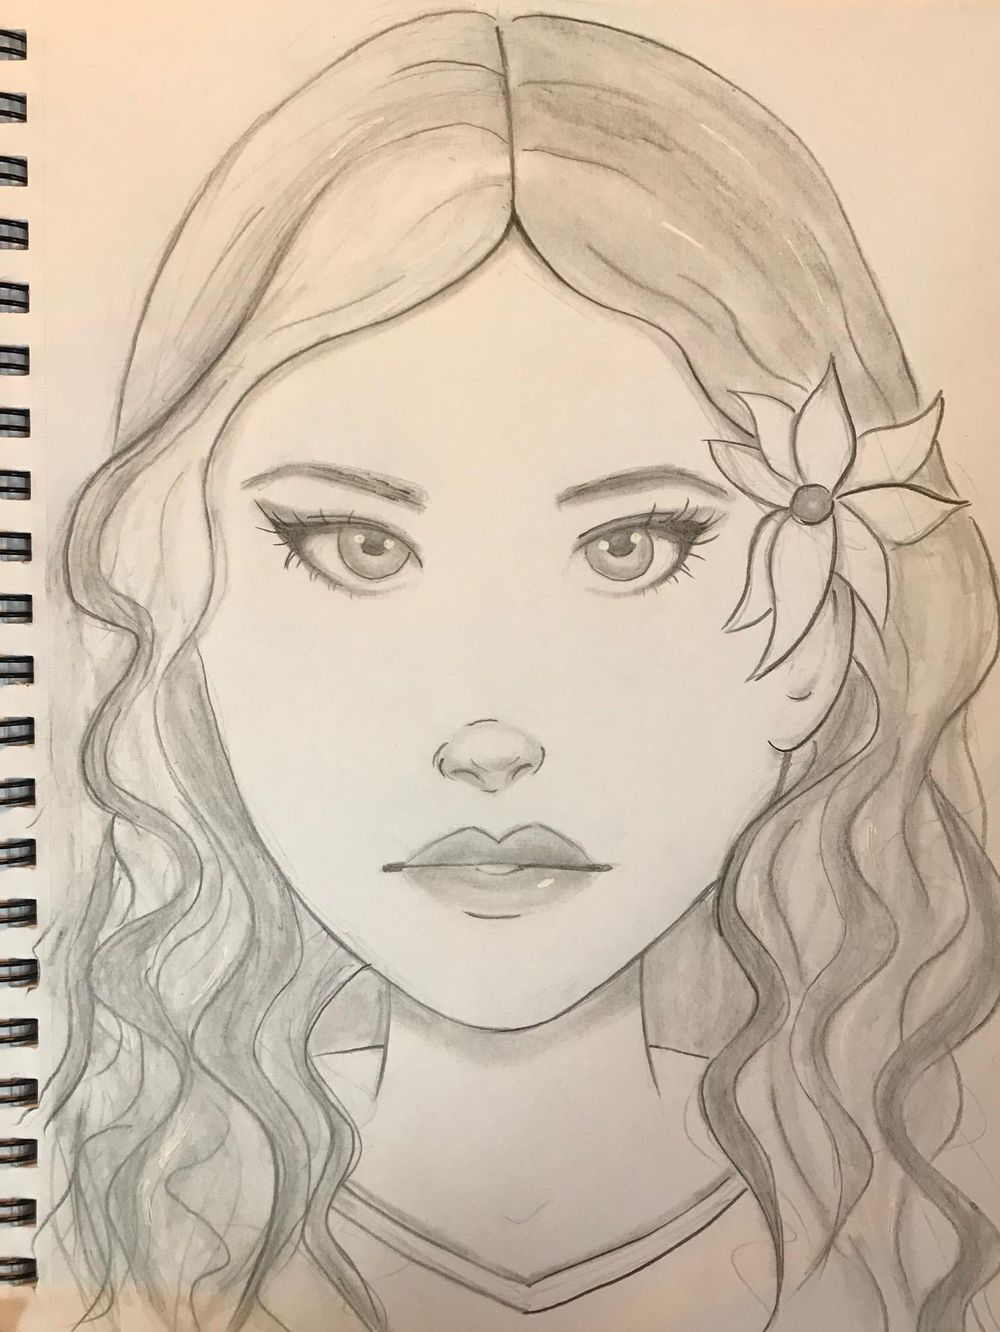 Girl Sketches - image 2 - student project